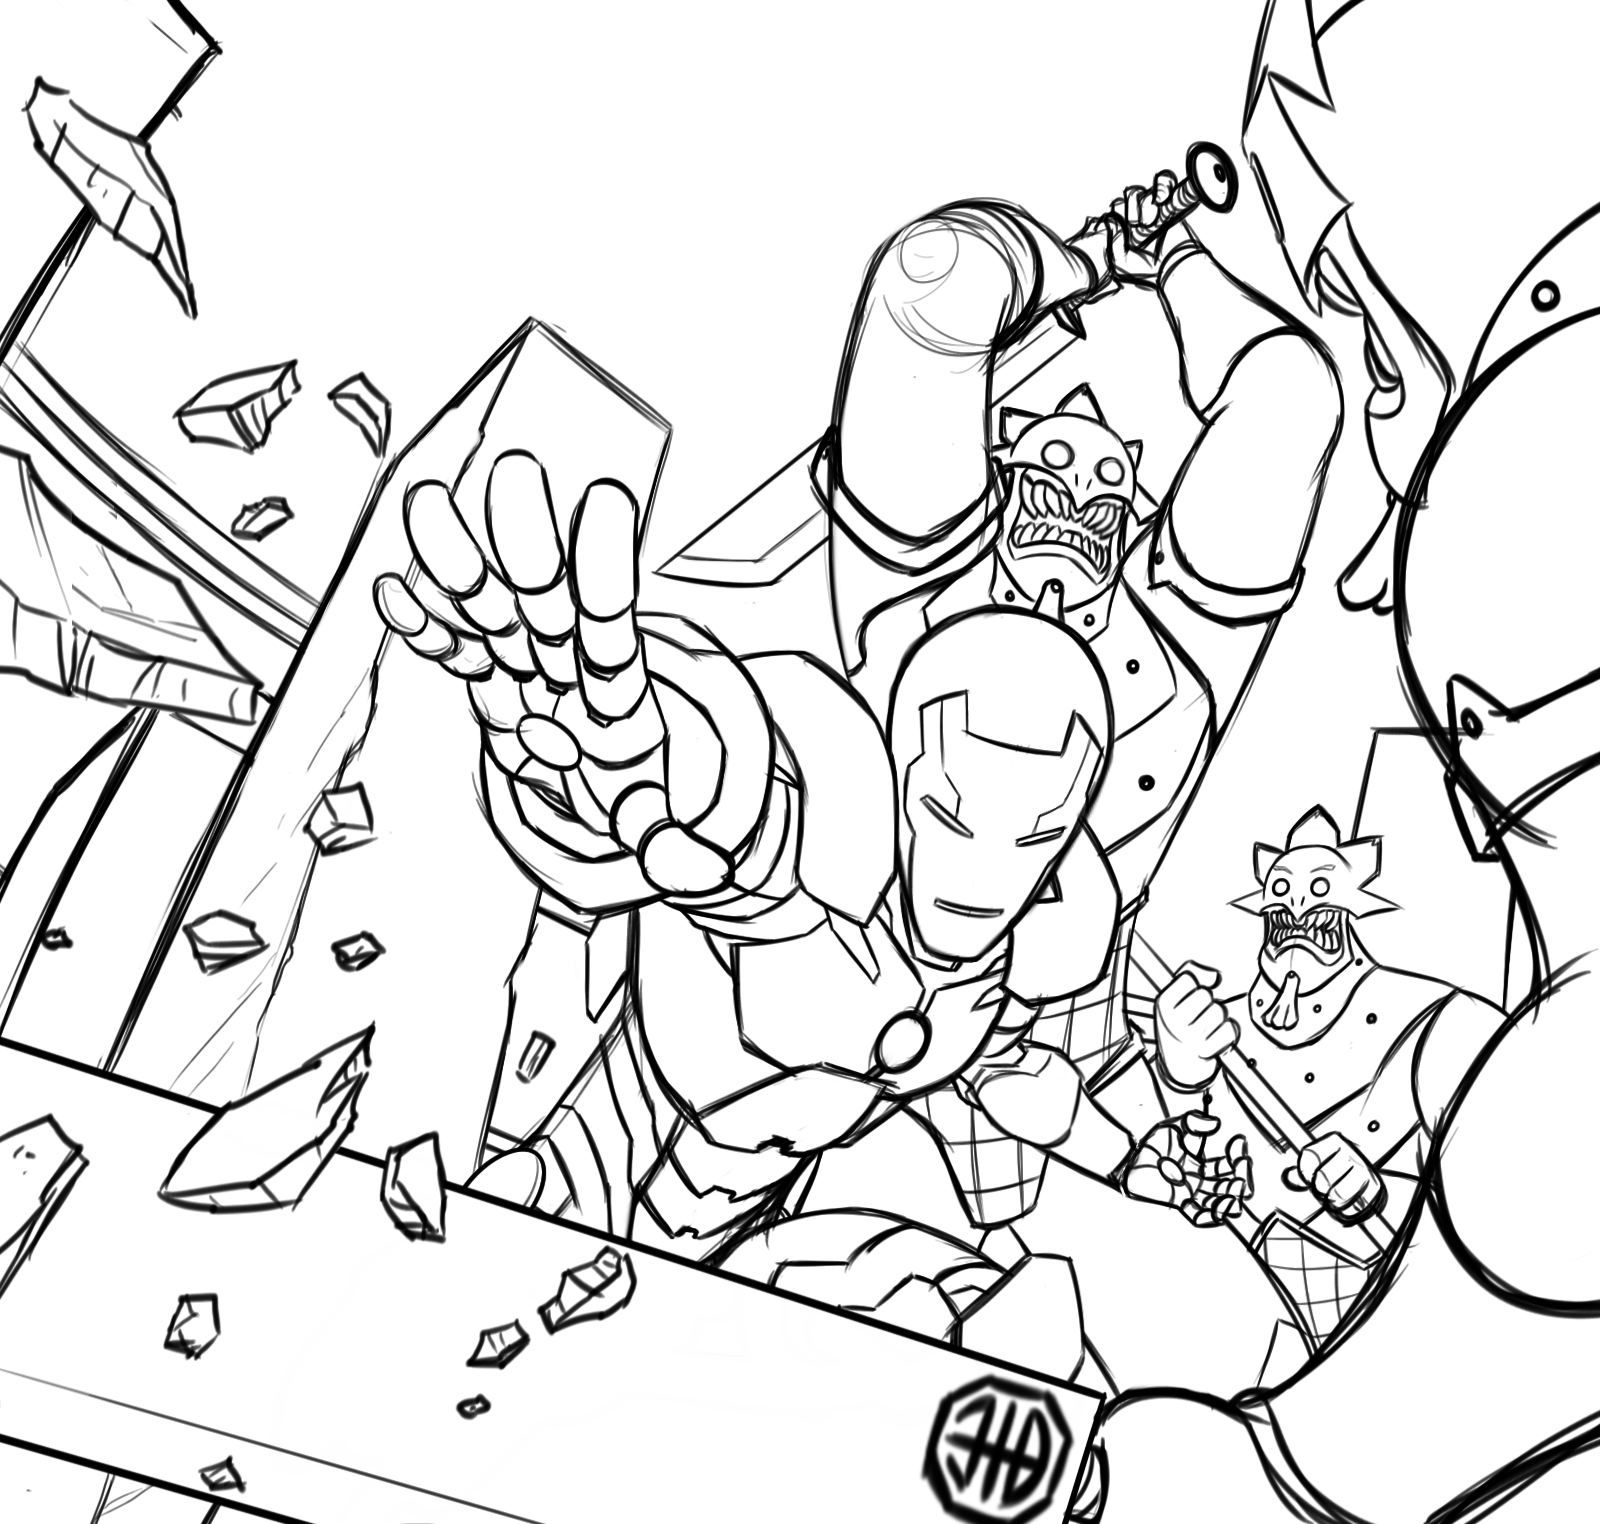 iron man coloring pages online heroes iron man coloring page free coloring pages online man pages online coloring iron